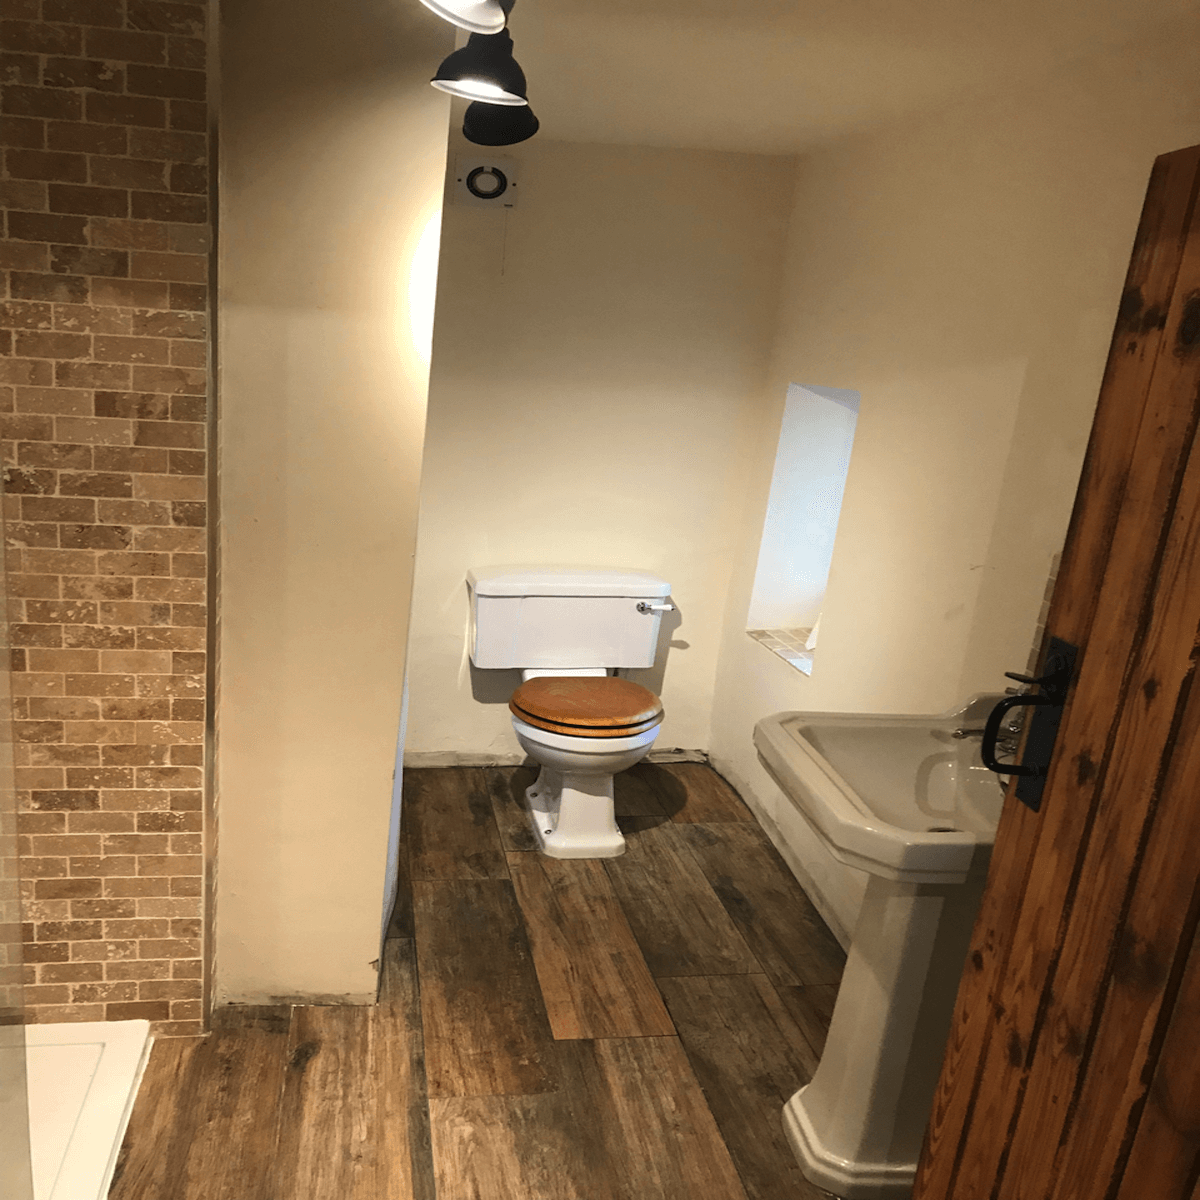 A new bathroom in Hambledon RG9, Buckinghamshire